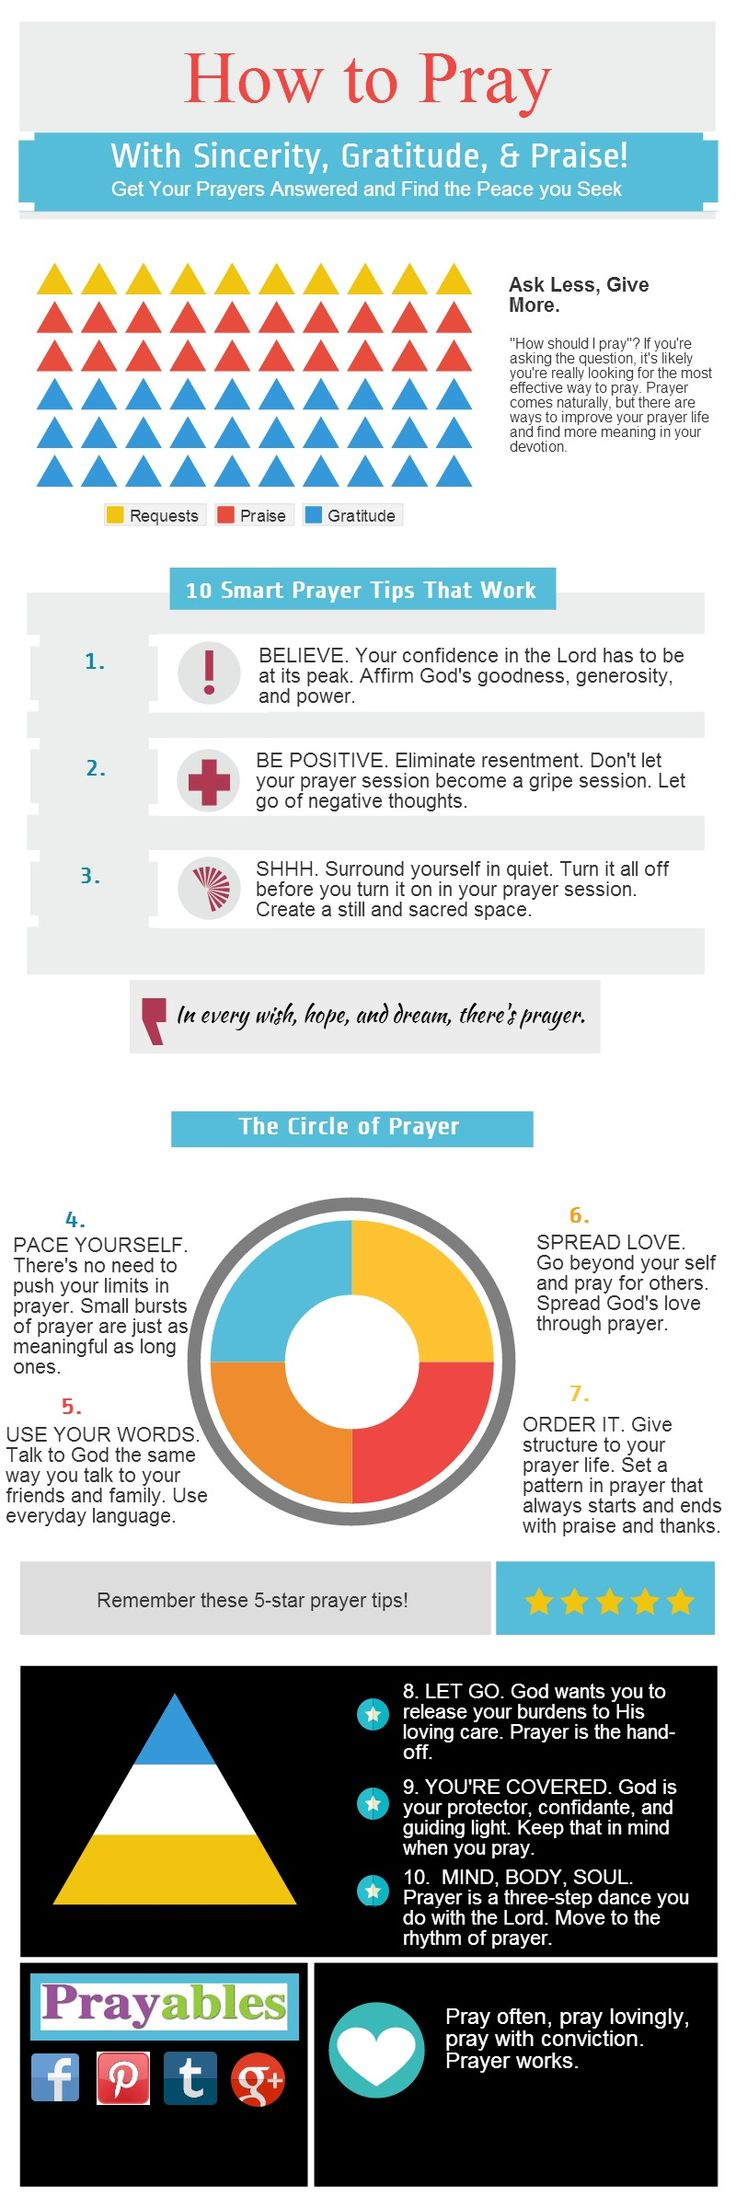 Ever wonder about the best way to pray?  http://www.beliefnet.com/Prayables/Prayer-Galleries/How-to-Pray-Effectively.aspx #prayers